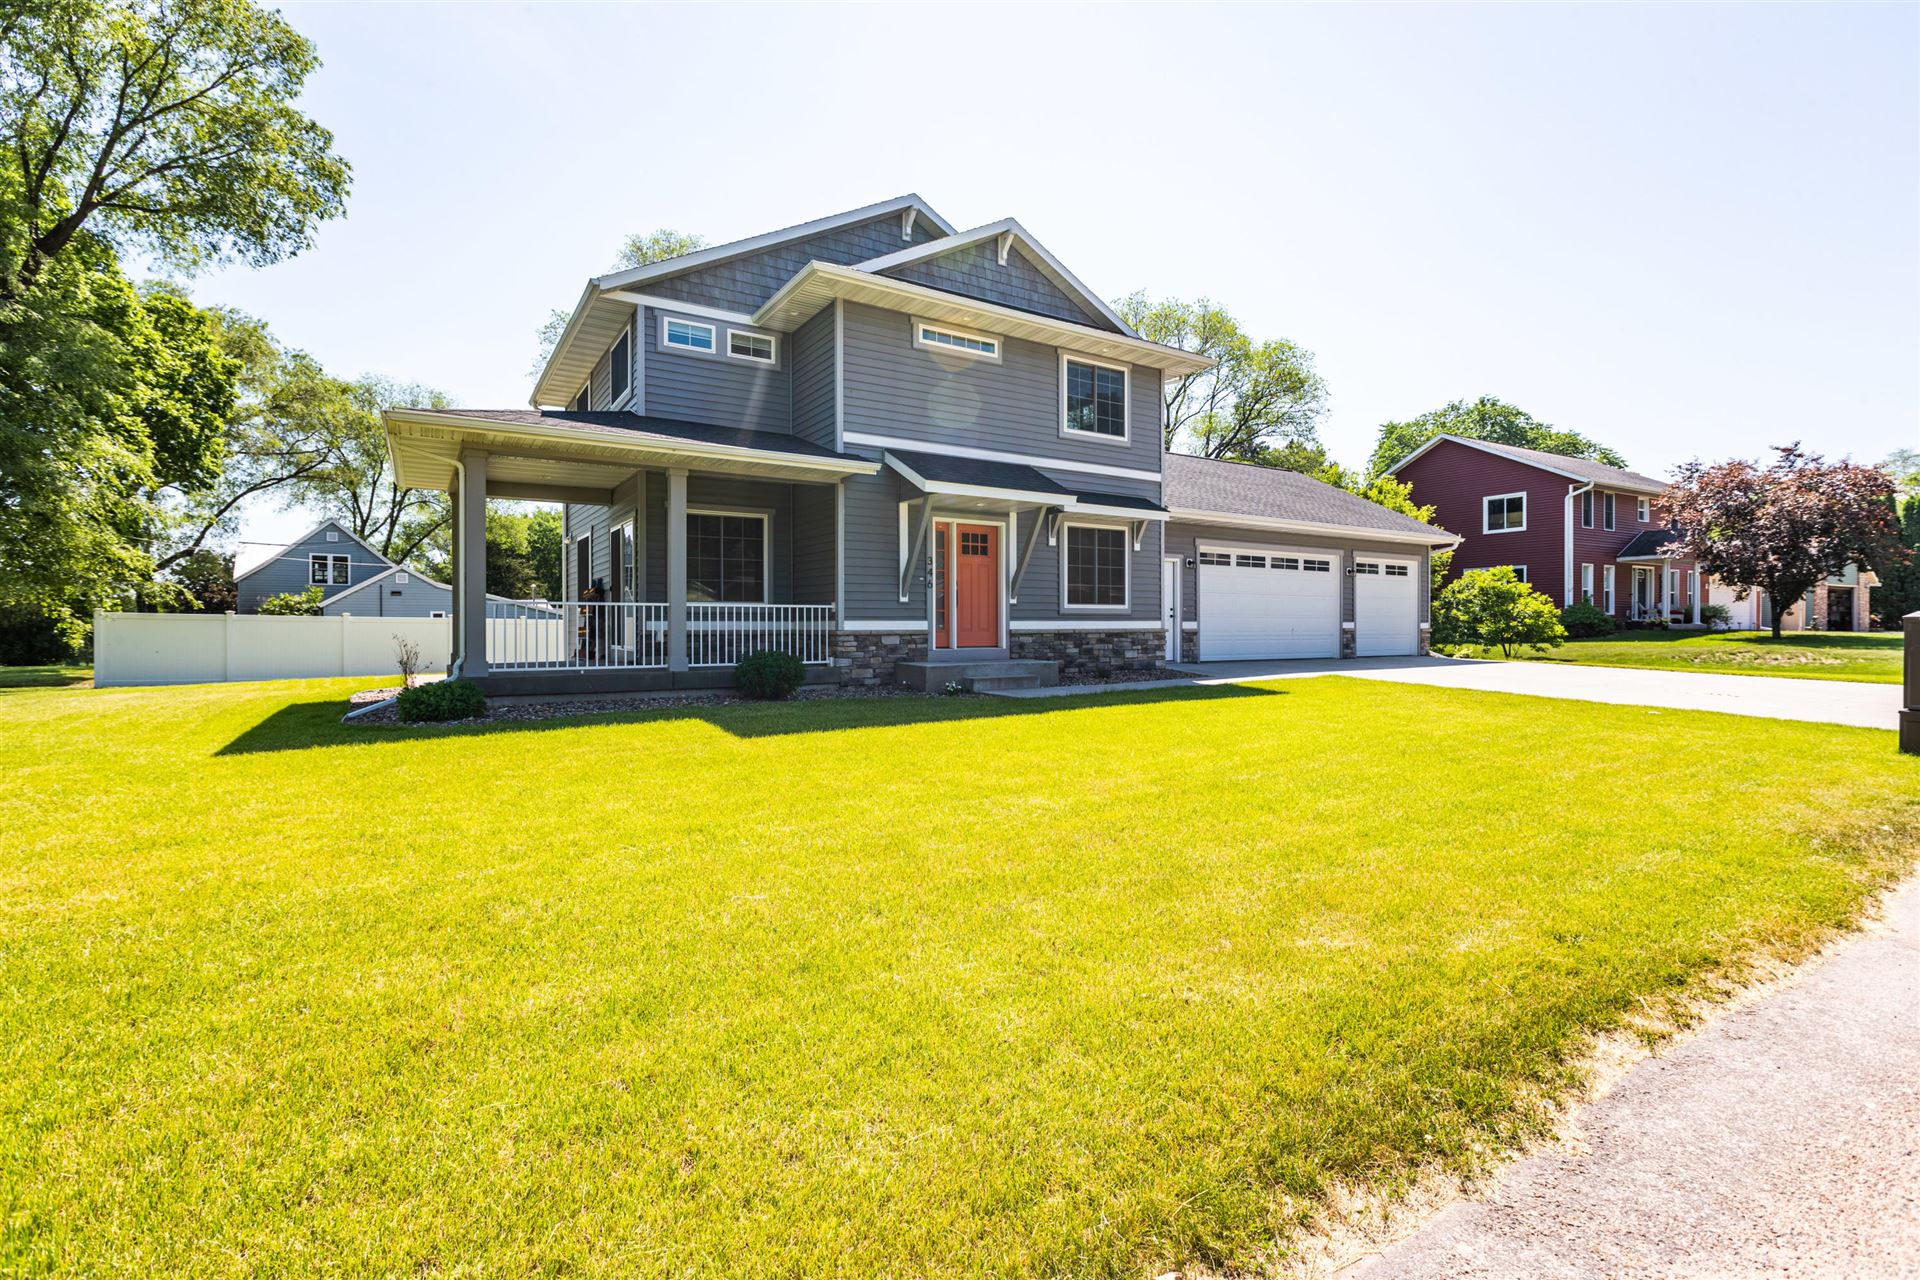 346 Tellin Ct, Campbell, WI 54603 - MLS#: 1745546